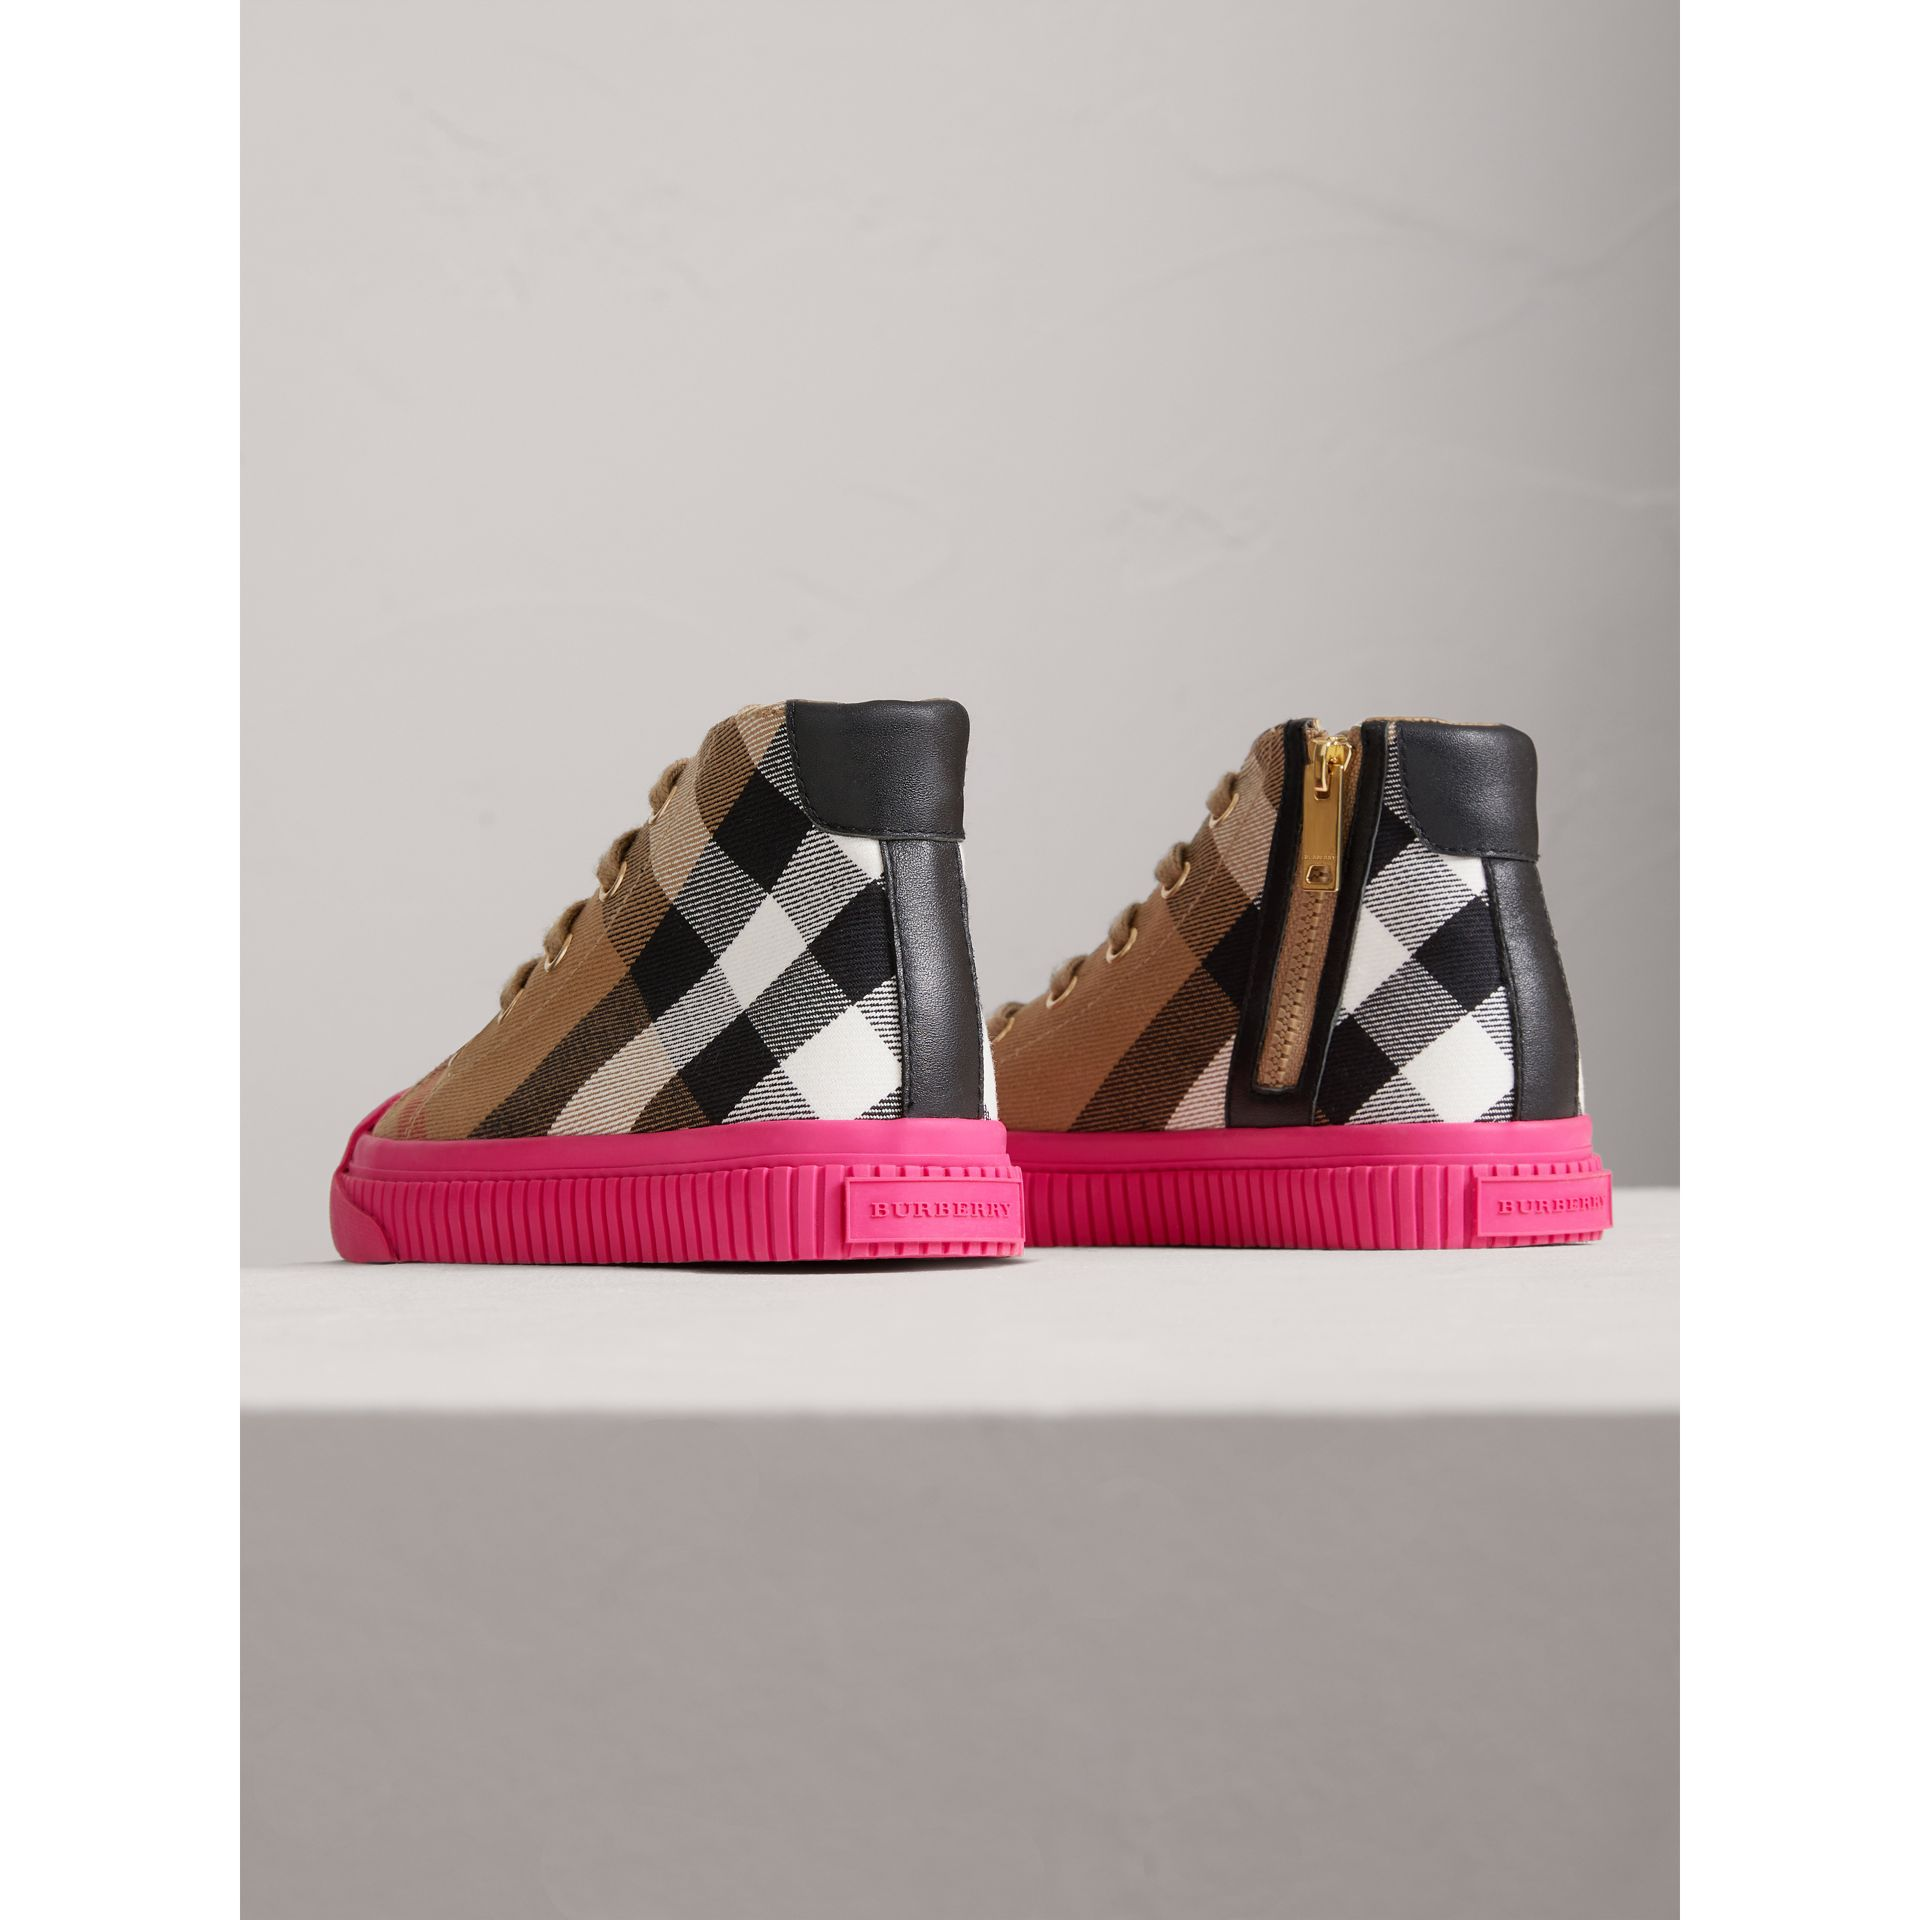 House Check and Leather Trainers in Classic/neon Pink | Burberry United Kingdom - gallery image 2